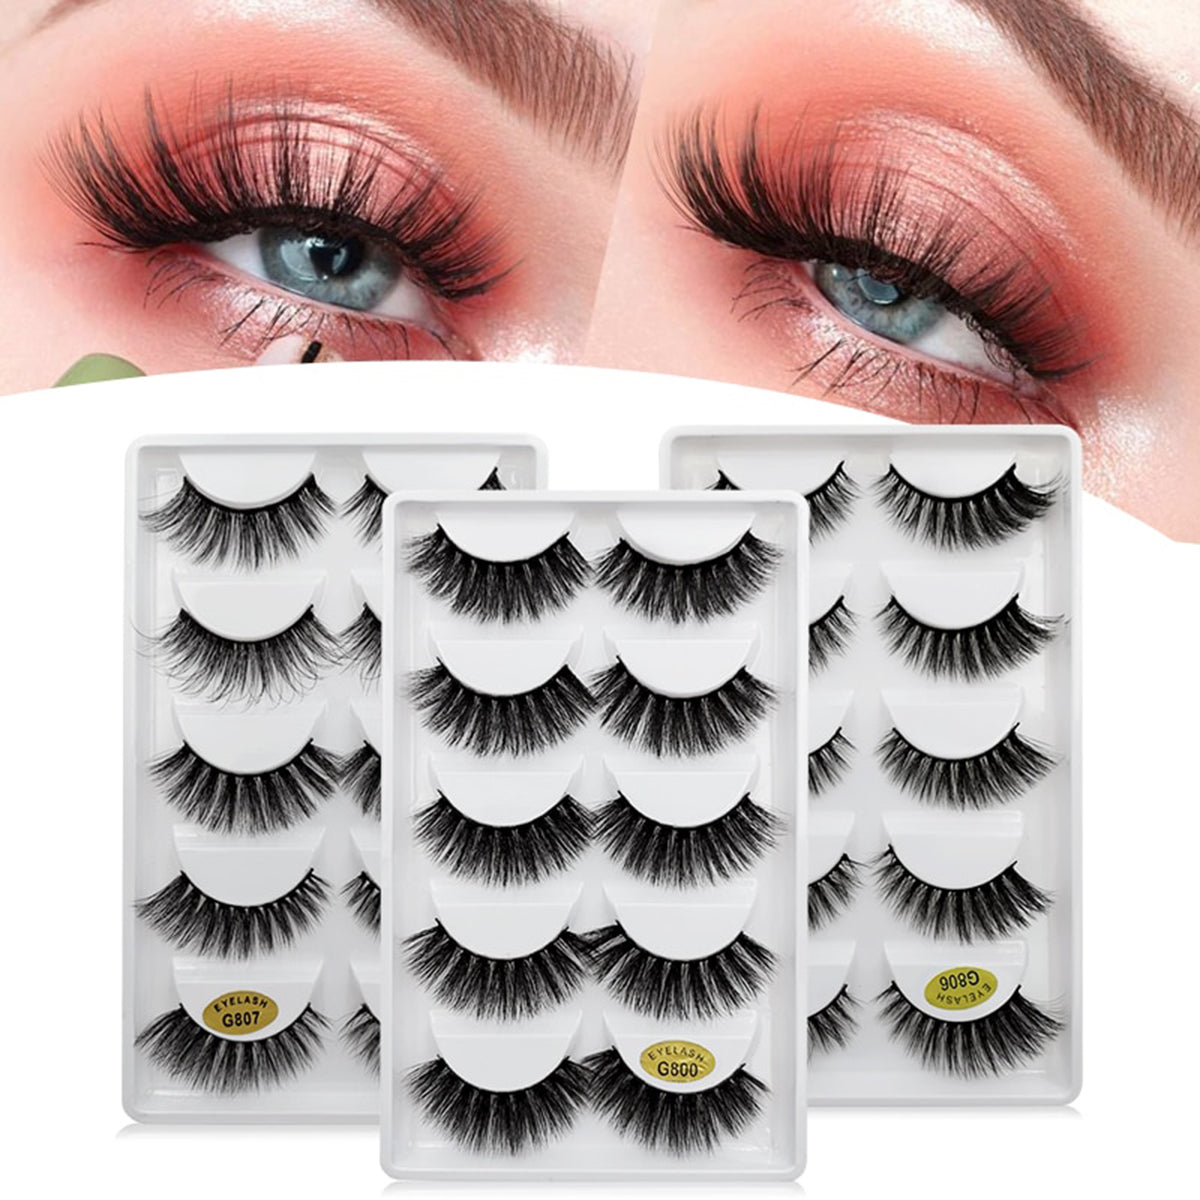 5 Pairs 3D Mink Lashes for Beauty Makeup